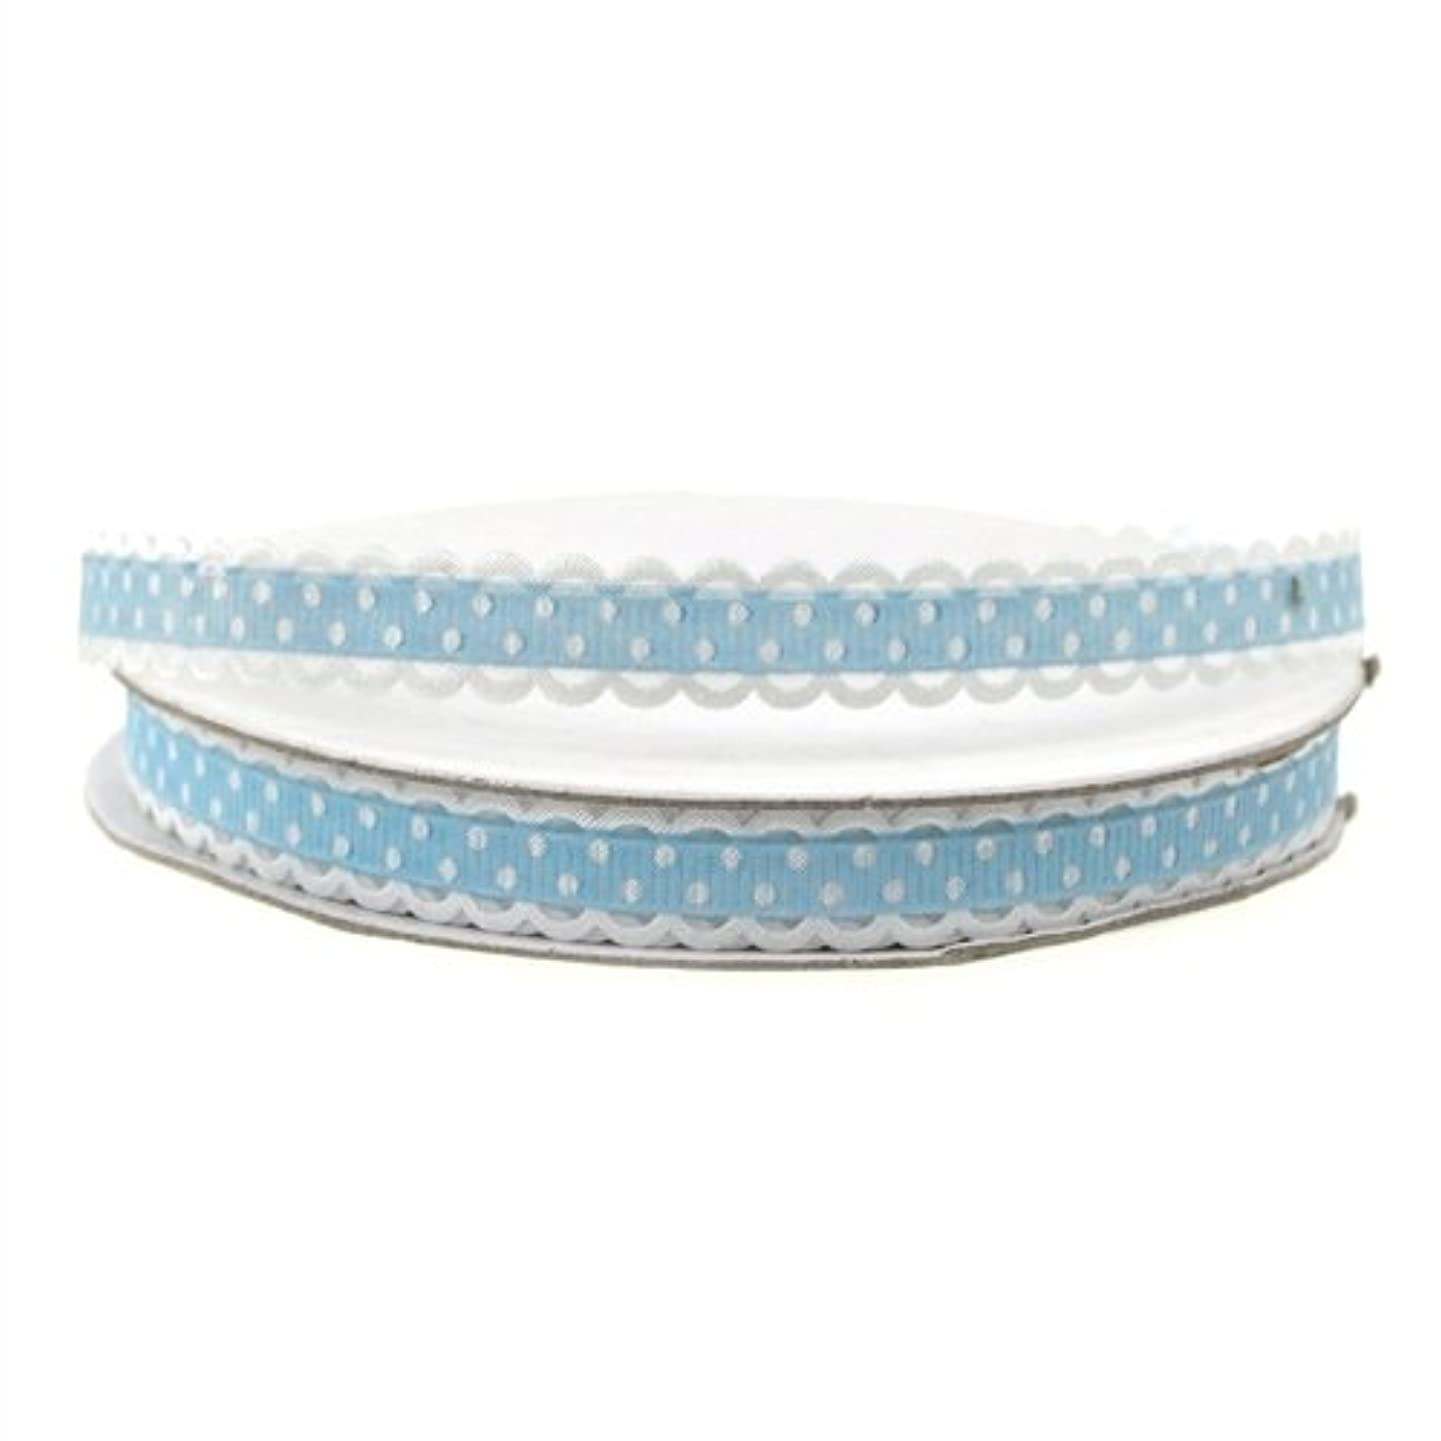 Homeford Firefly Imports Polka-dot Polyester Ribbon Scalloped-Edge, 3/8-Inch, 25 Yards, Light Blue, 3/8